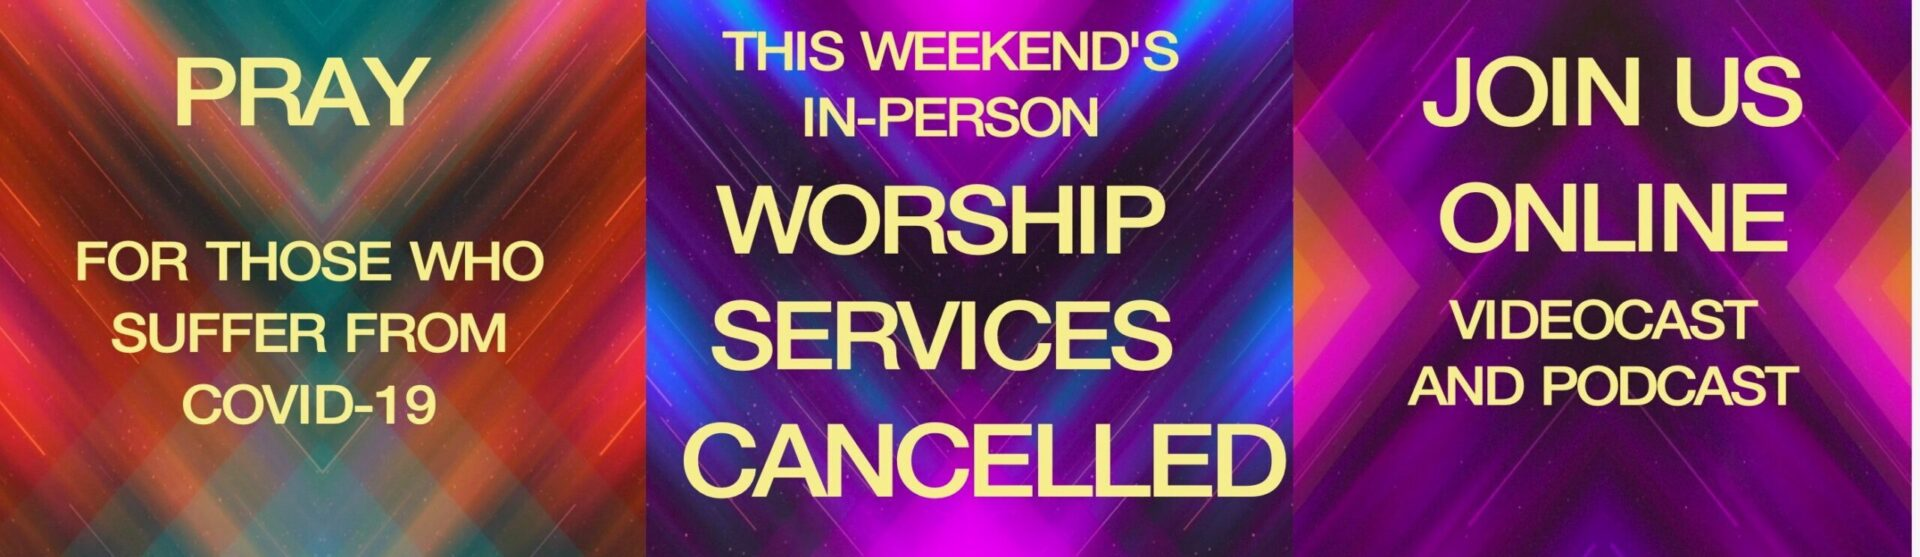 Infor on cancelled worship